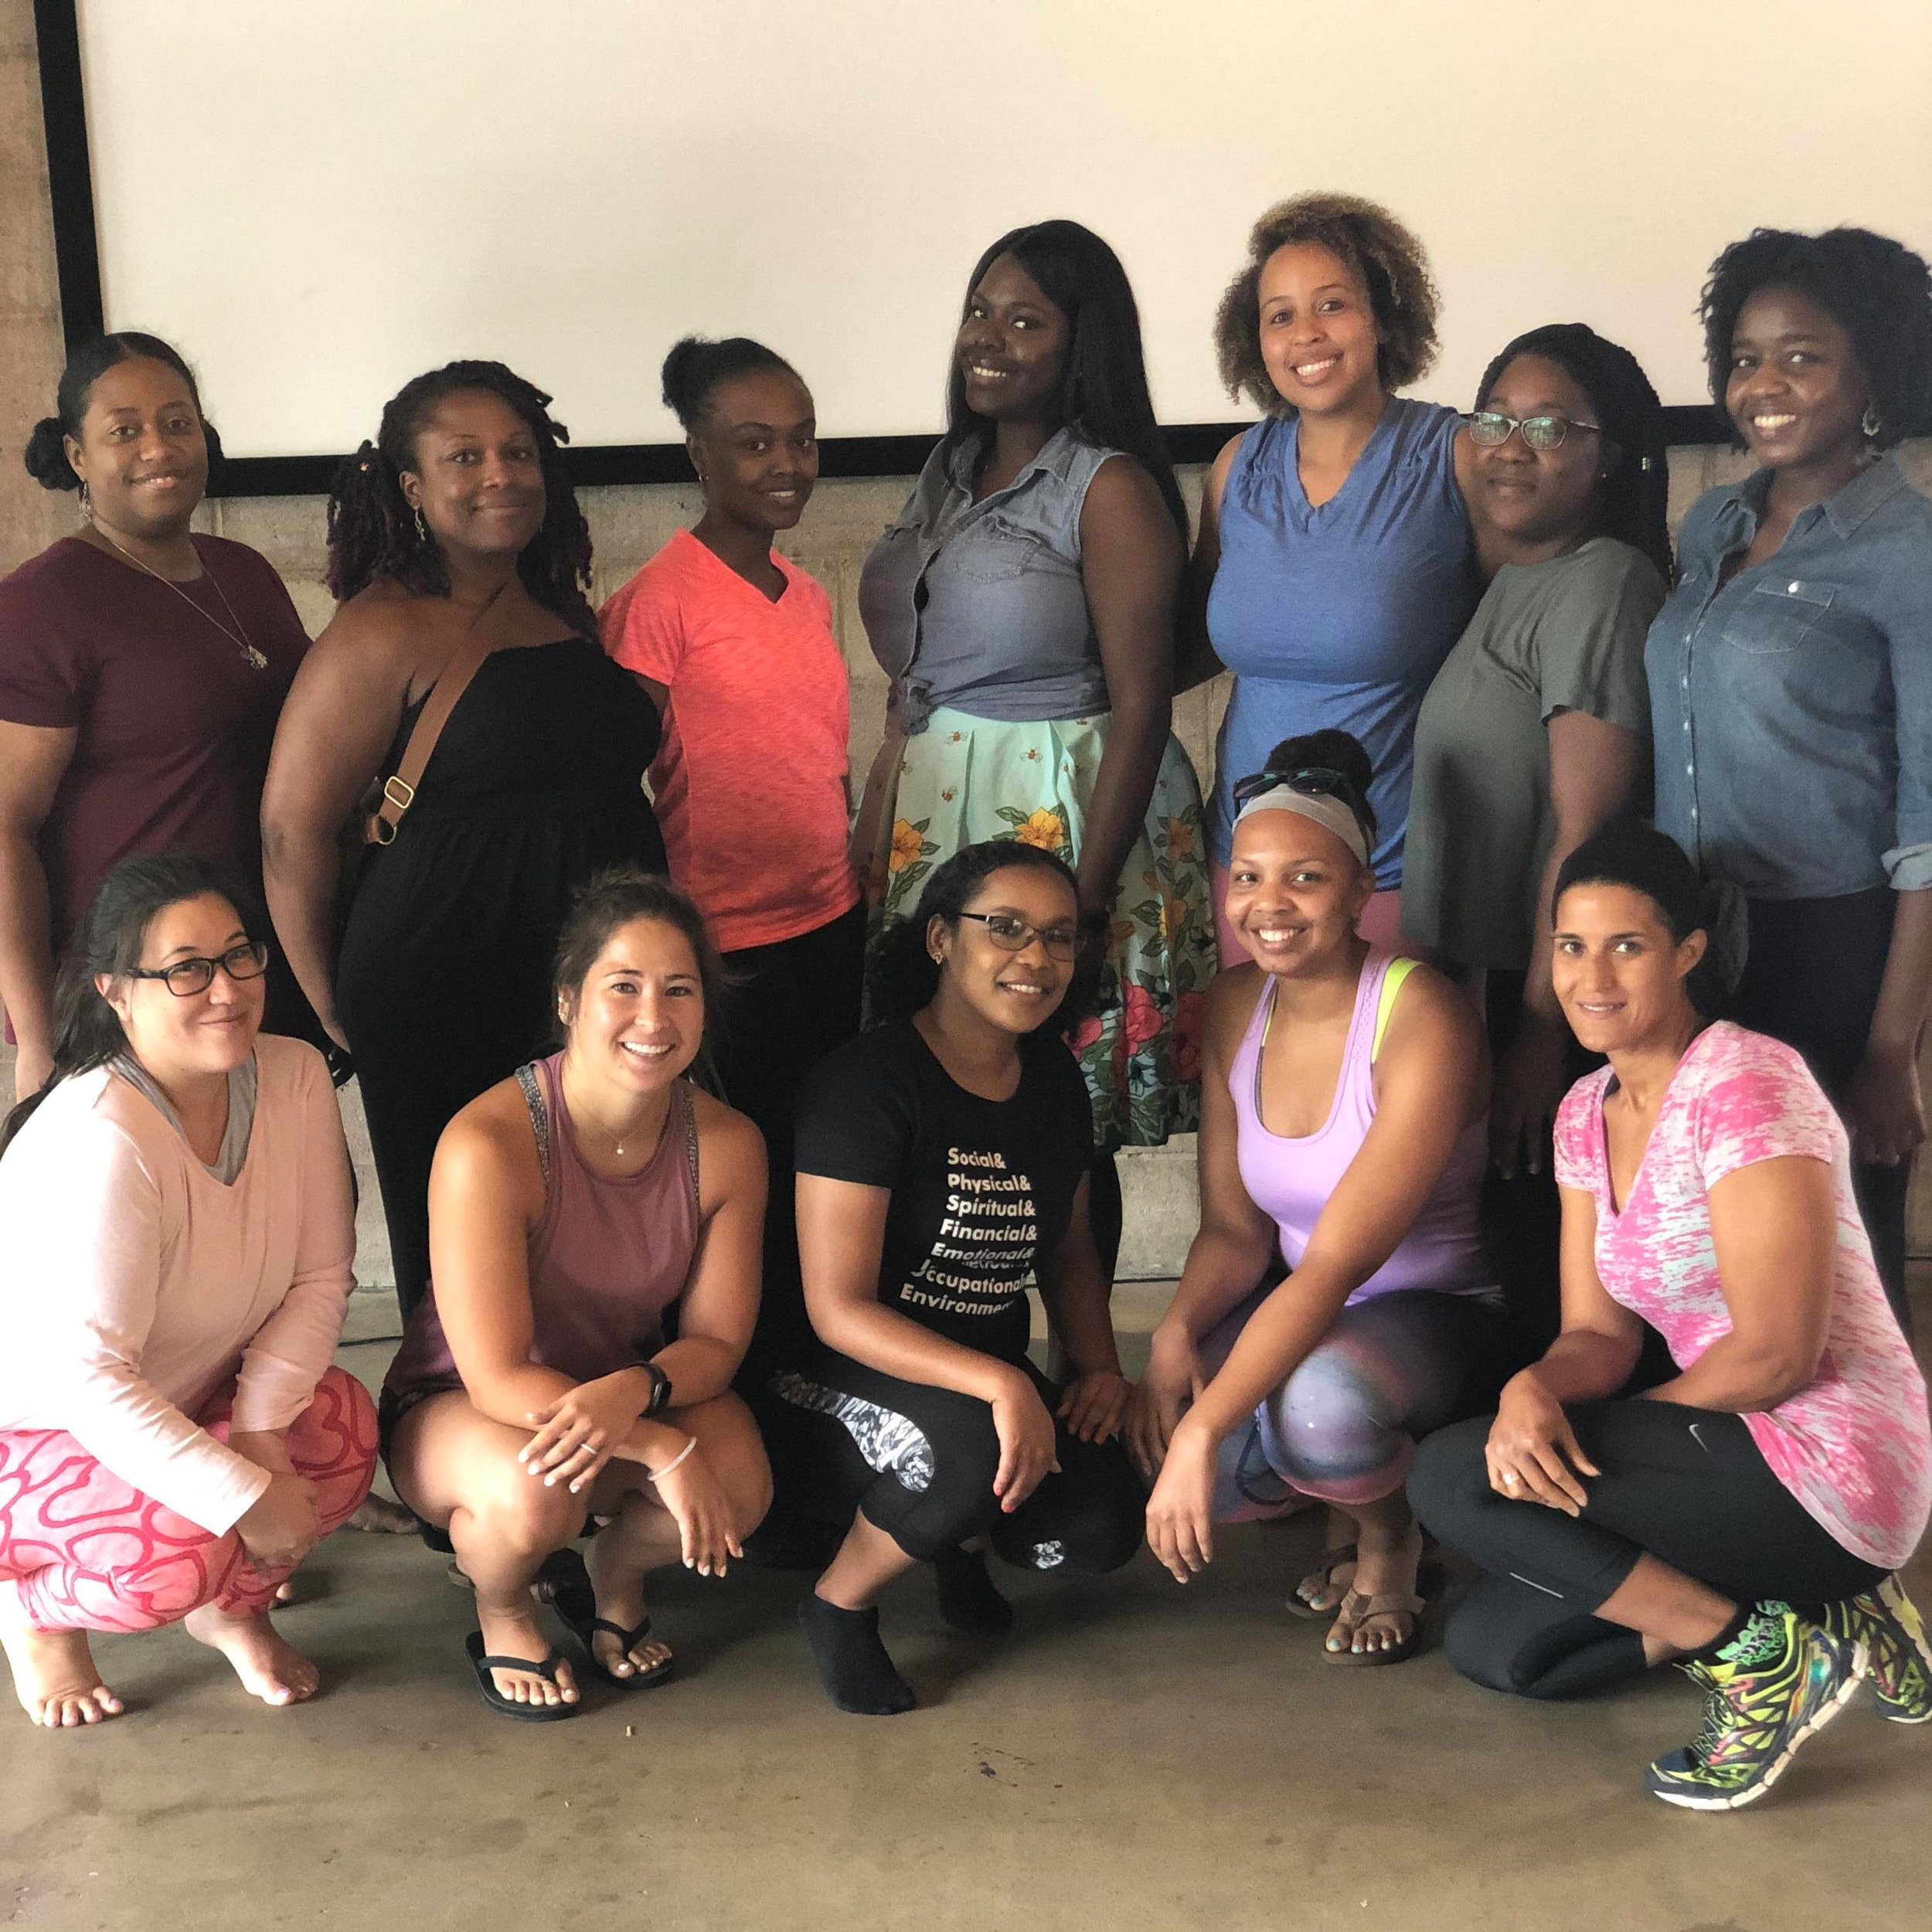 Partnership with SweatNET CLT - CHARLOTTE POP-UPJuly 7, 2019Together we came in a safe, transparent space to find balance, relax, release, and most importantly, learn how to take steps to unlock our possibilities.The women in attendance were provided with a therapist-lead wellness session, an anonymous Q&A session, mindfulness and breathing exercises, customized goody bags, and much more!